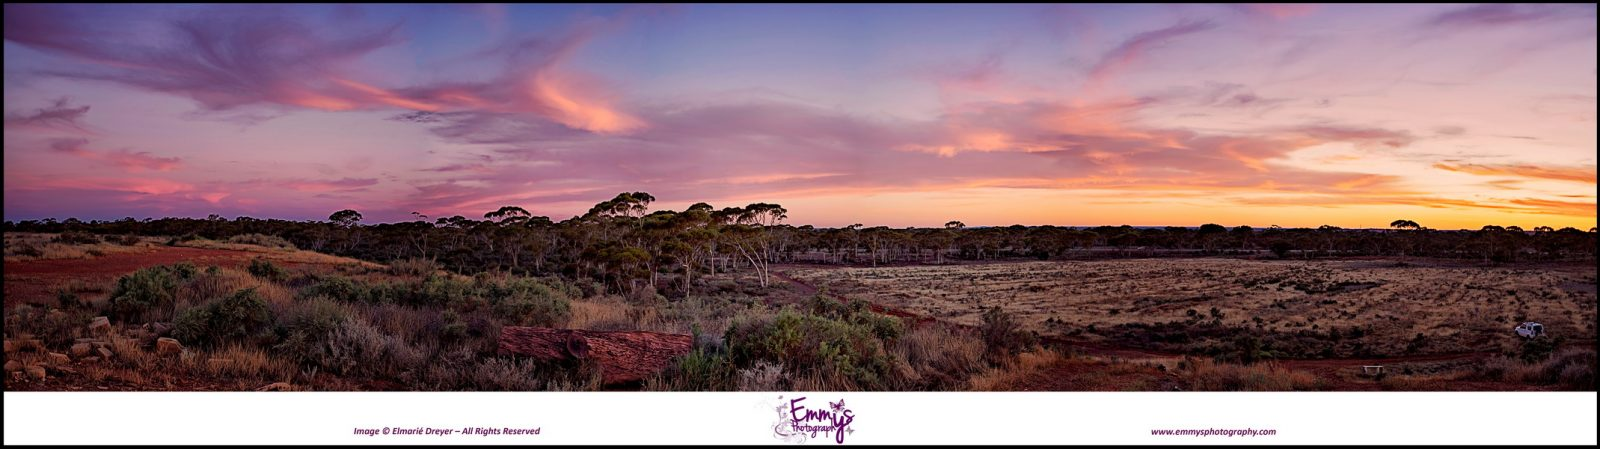 Sunset Pano_1 2015-11-21